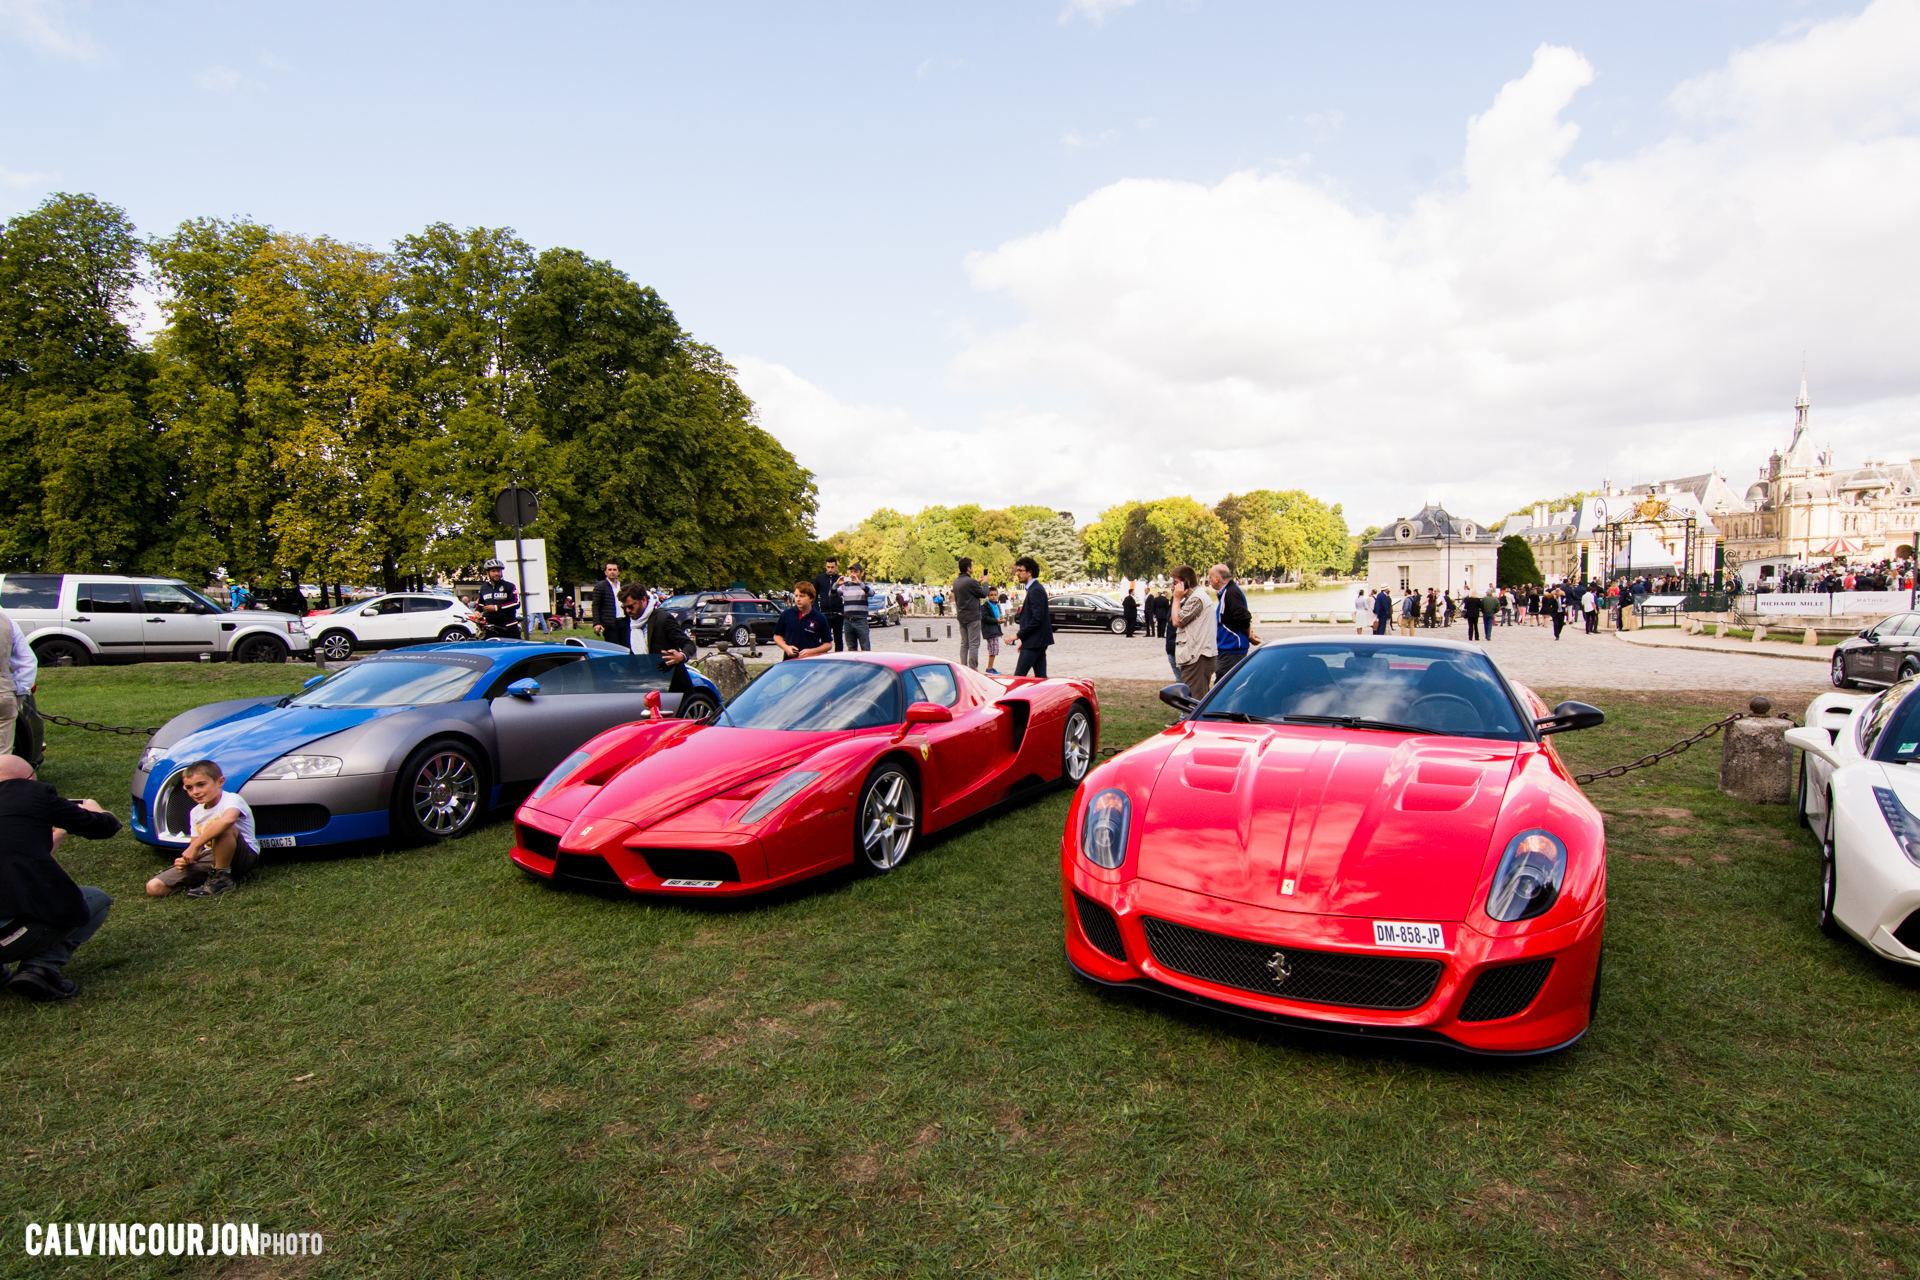 parking Bugatti, Ferrari - Chantilly 2015 – photo Calvin Courjon